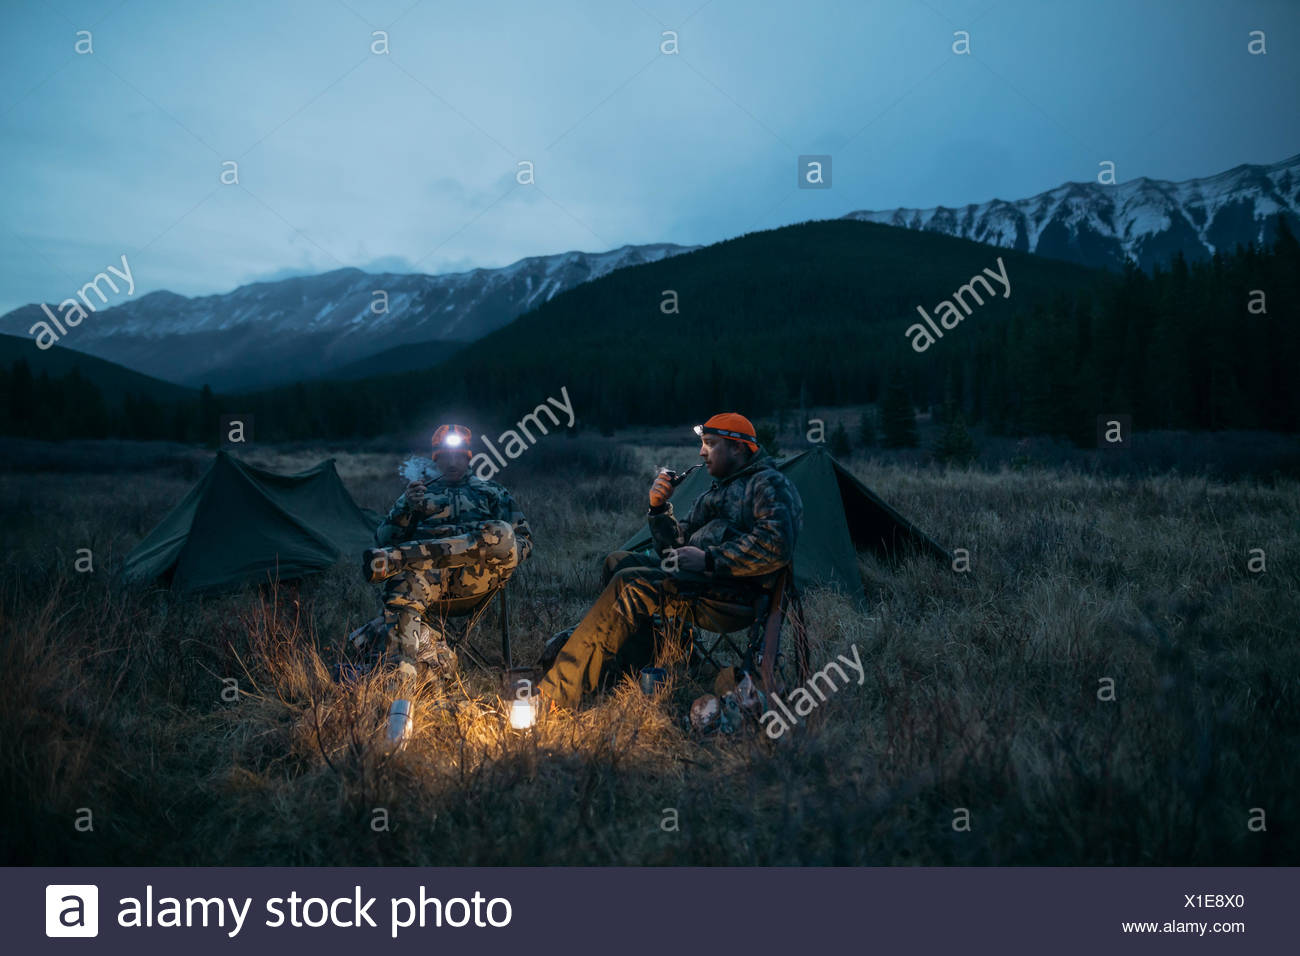 Male hunter friends in camouflage and headlamps at campsite in remote field below mountains at night - Stock Image